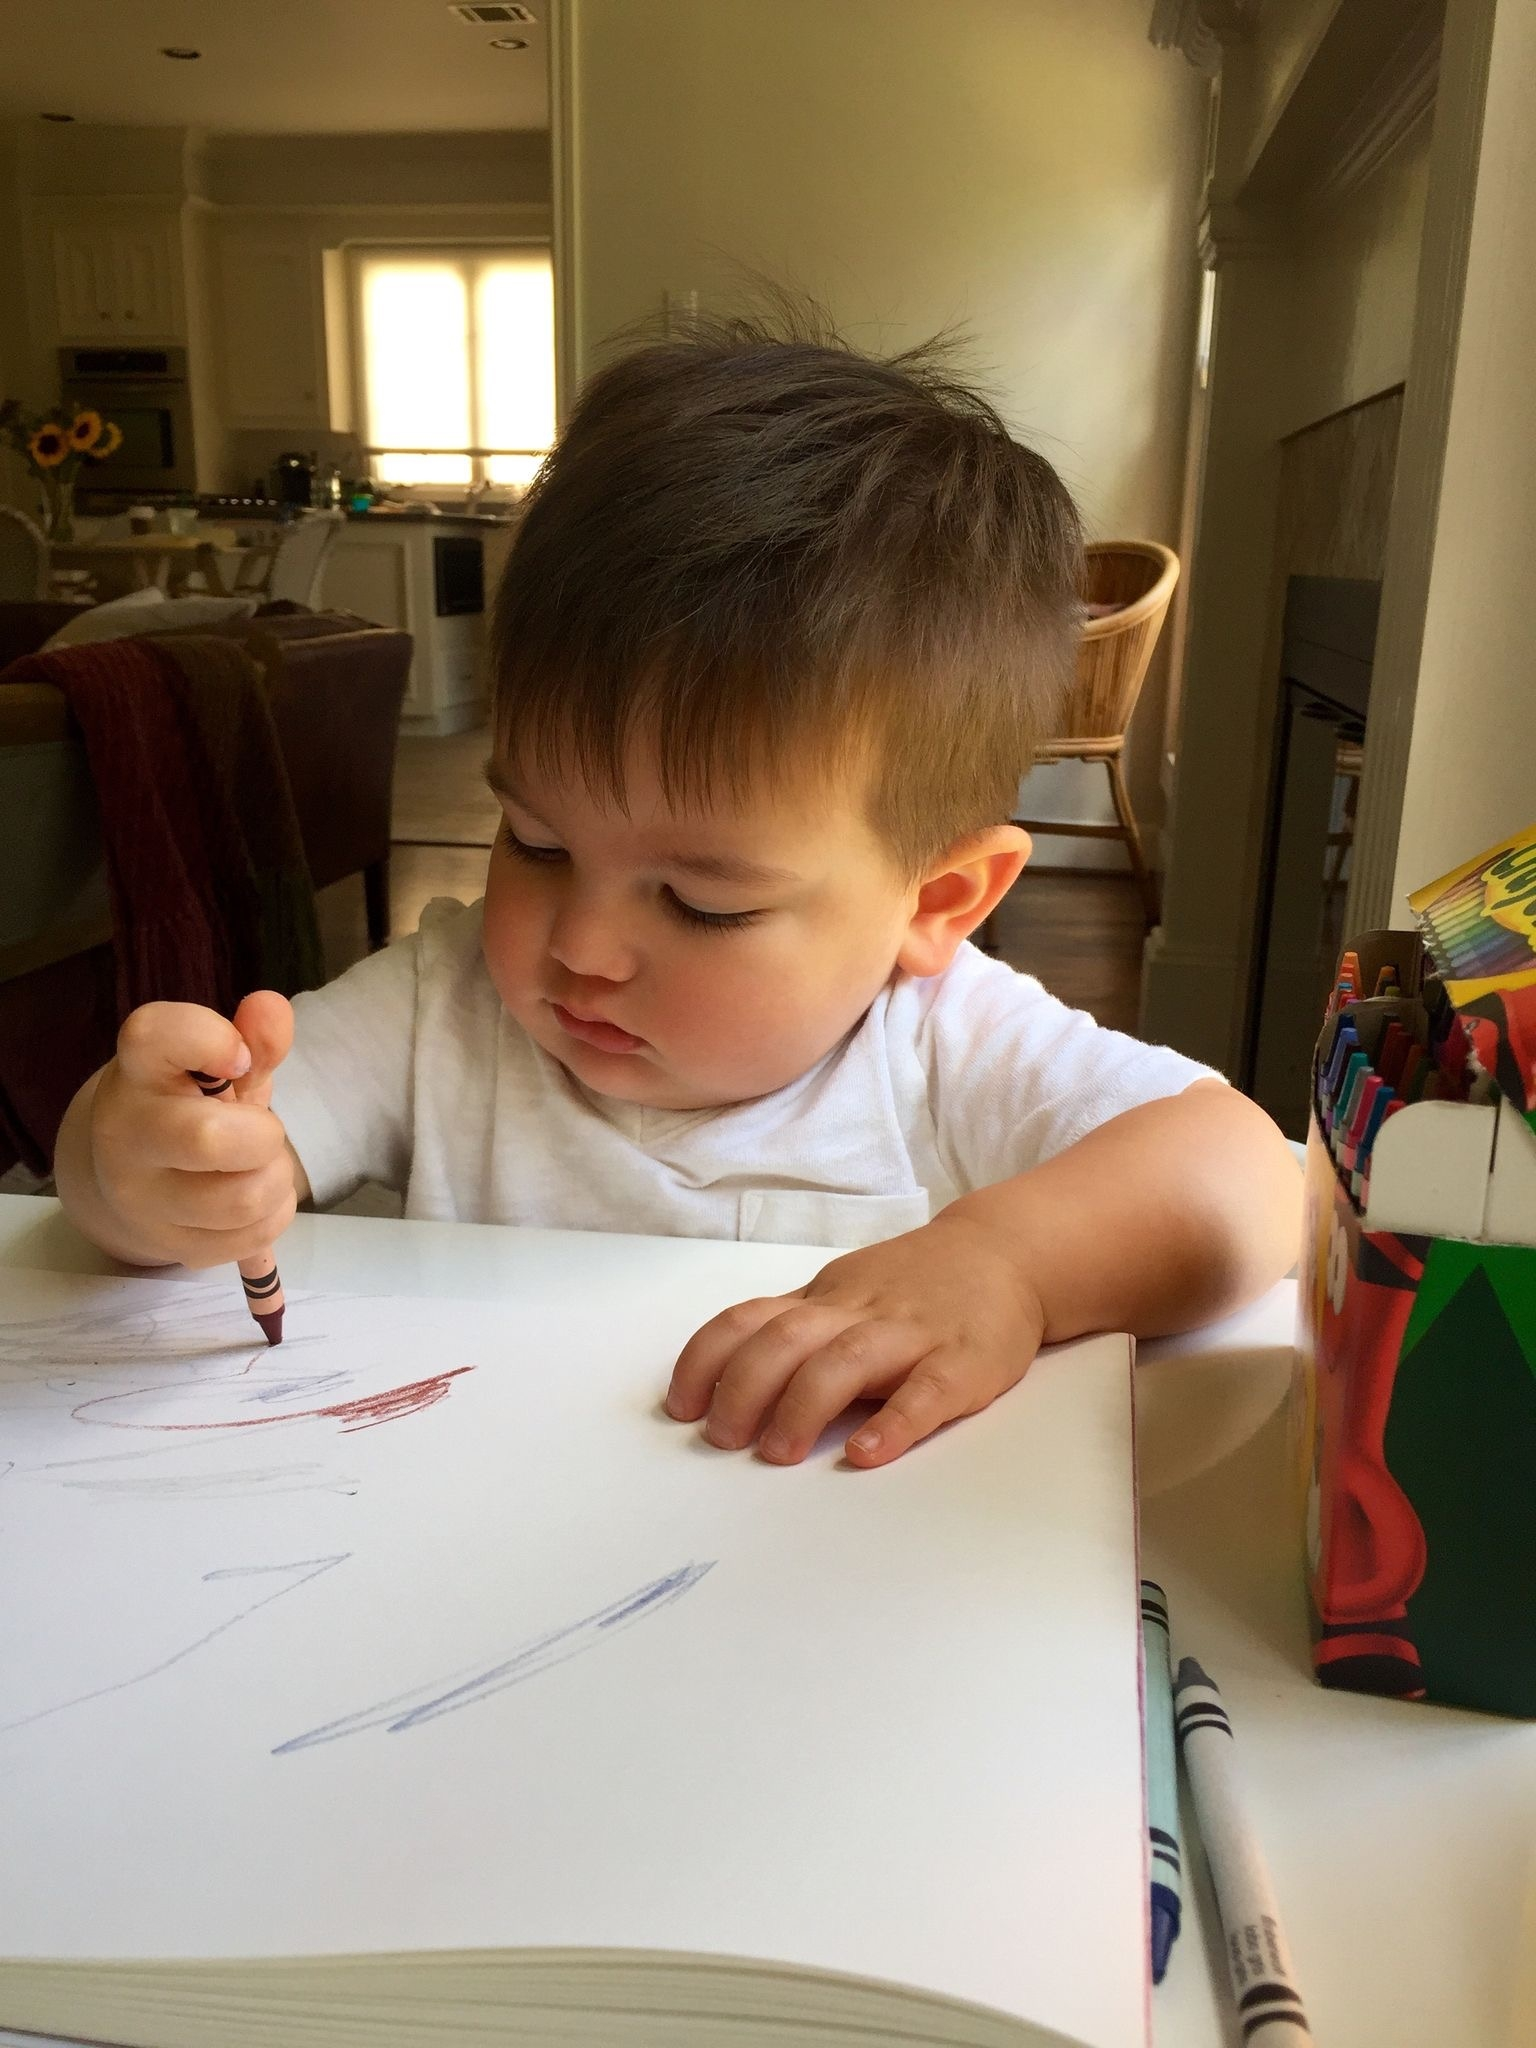 Hard at work on his coloring (20 months)